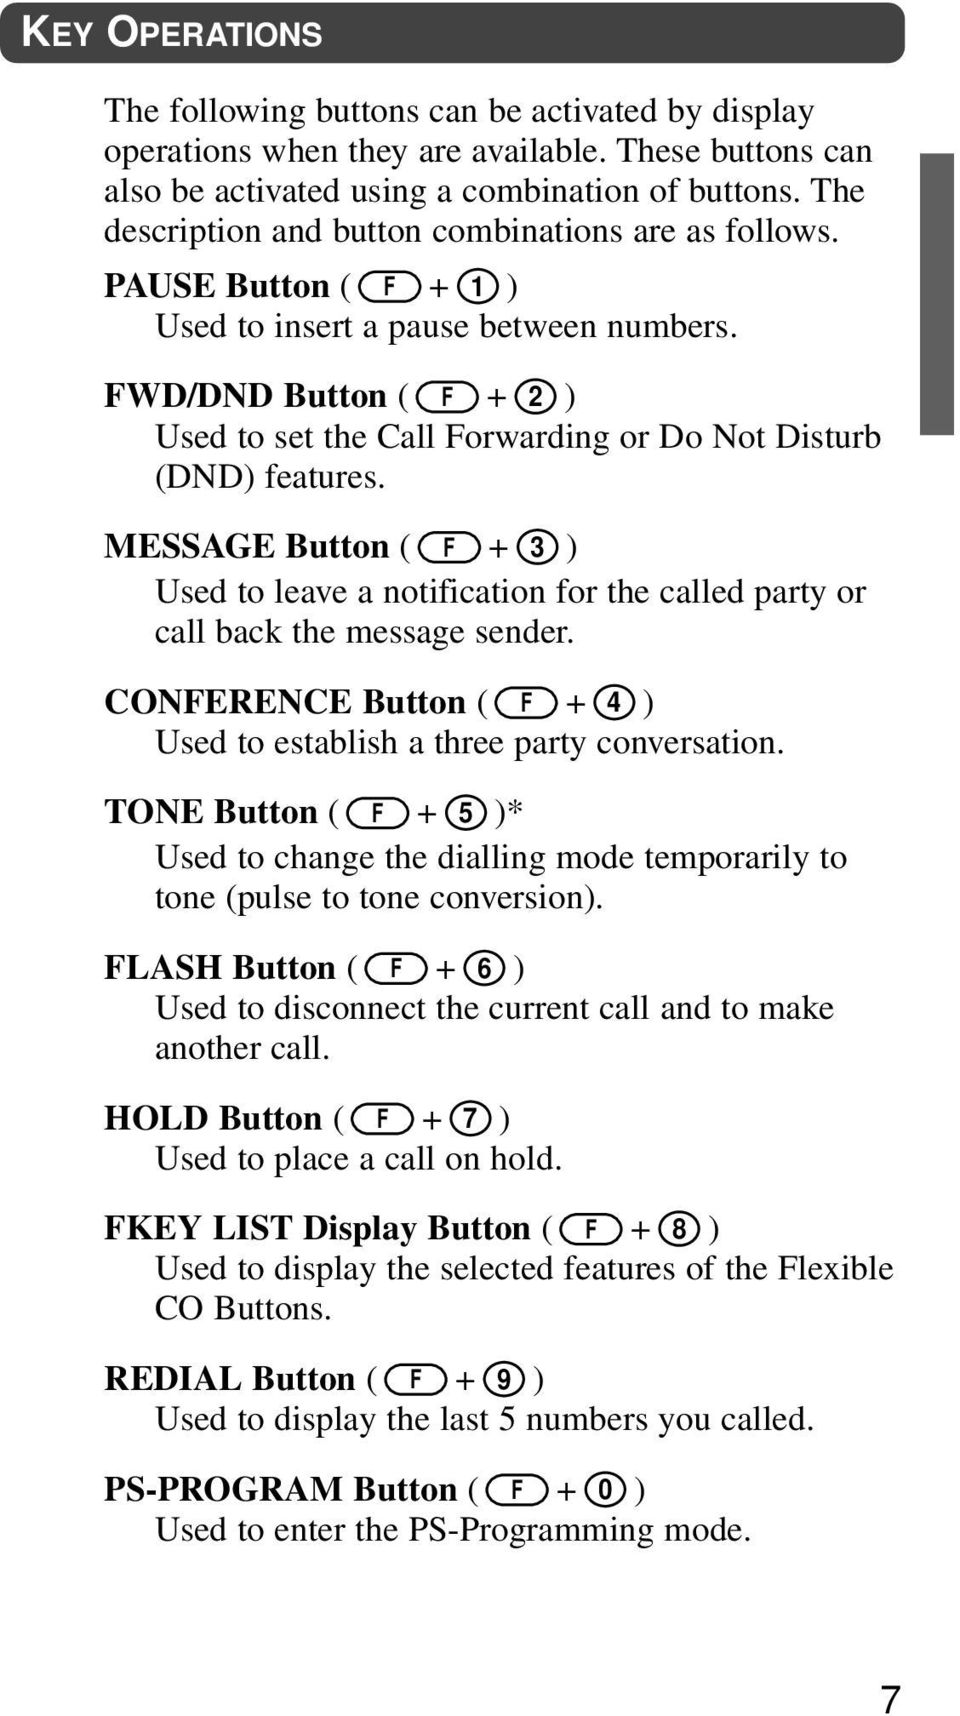 FWD/DND Button ( F + ) Used to set the Call Forwarding or Do Not Disturb (DND) features. MESSAGE Button ( F + 3 ) Used to leave a notification for the called party or call back the message sender.